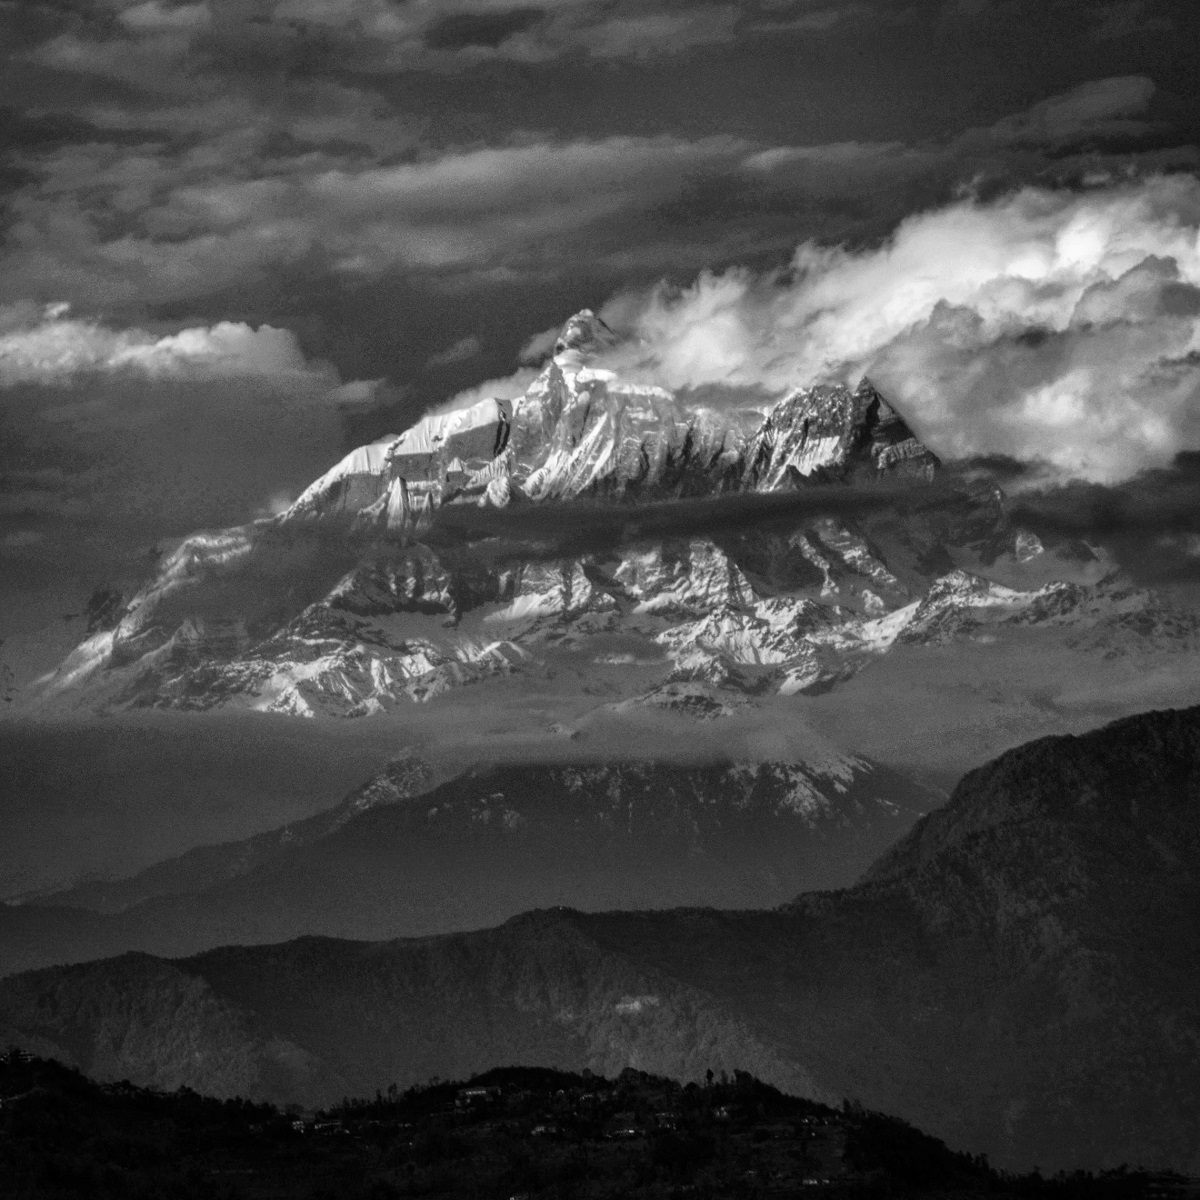 Machapuchare (Mount Fishtail) in the Annapurna massif of Gandaki Prades, north-central Nepal. The iconic peak reportedly has never been conquered.